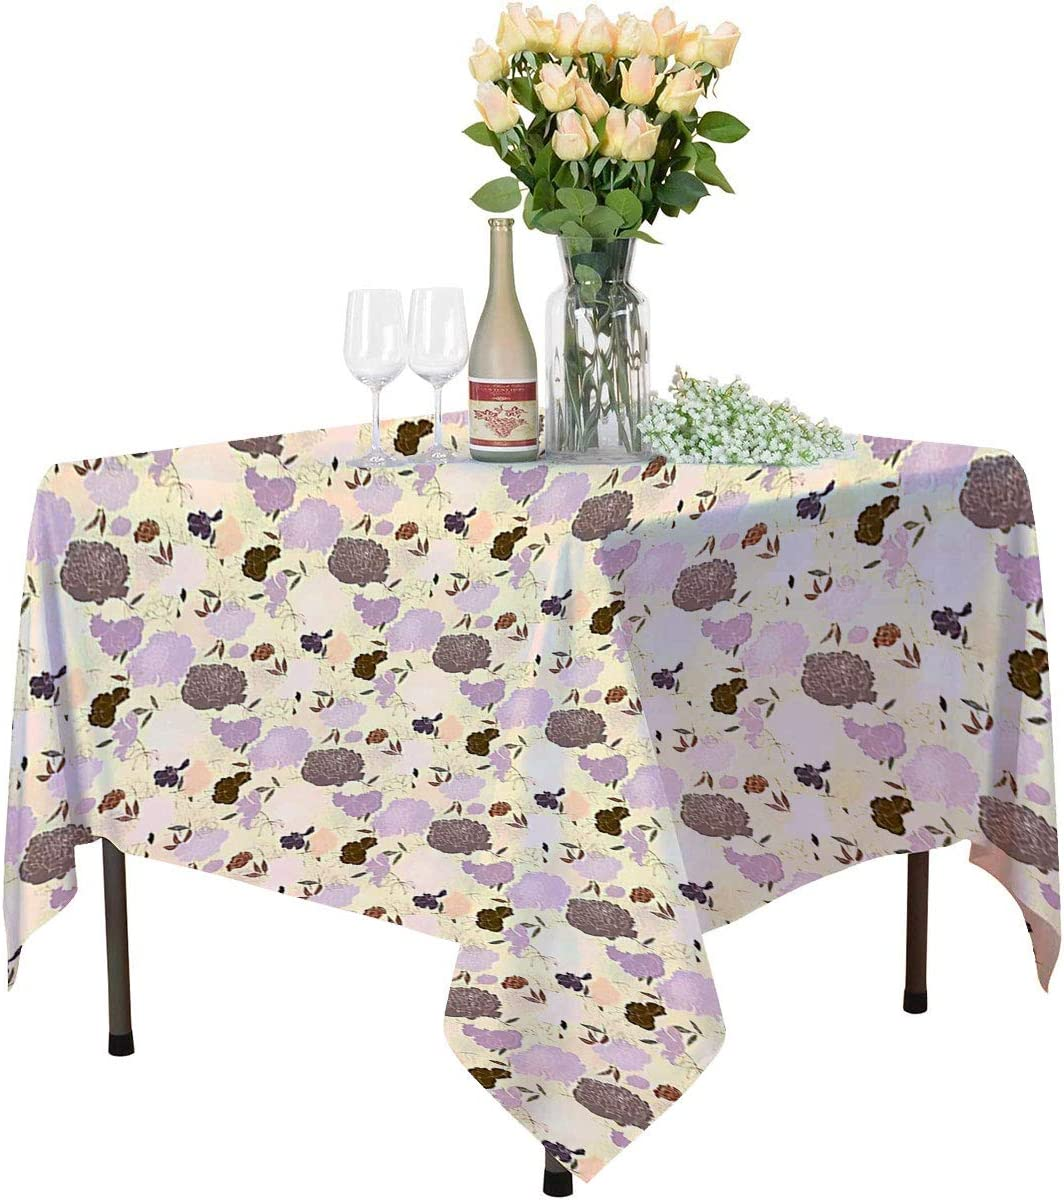 Peonies Rustic Tablecloth Classic Blossom Pastel Ornamental Garden Flowering Victorian Style Rococo Home Square Tablecloth W55 xL55 Mauve Cream Brown